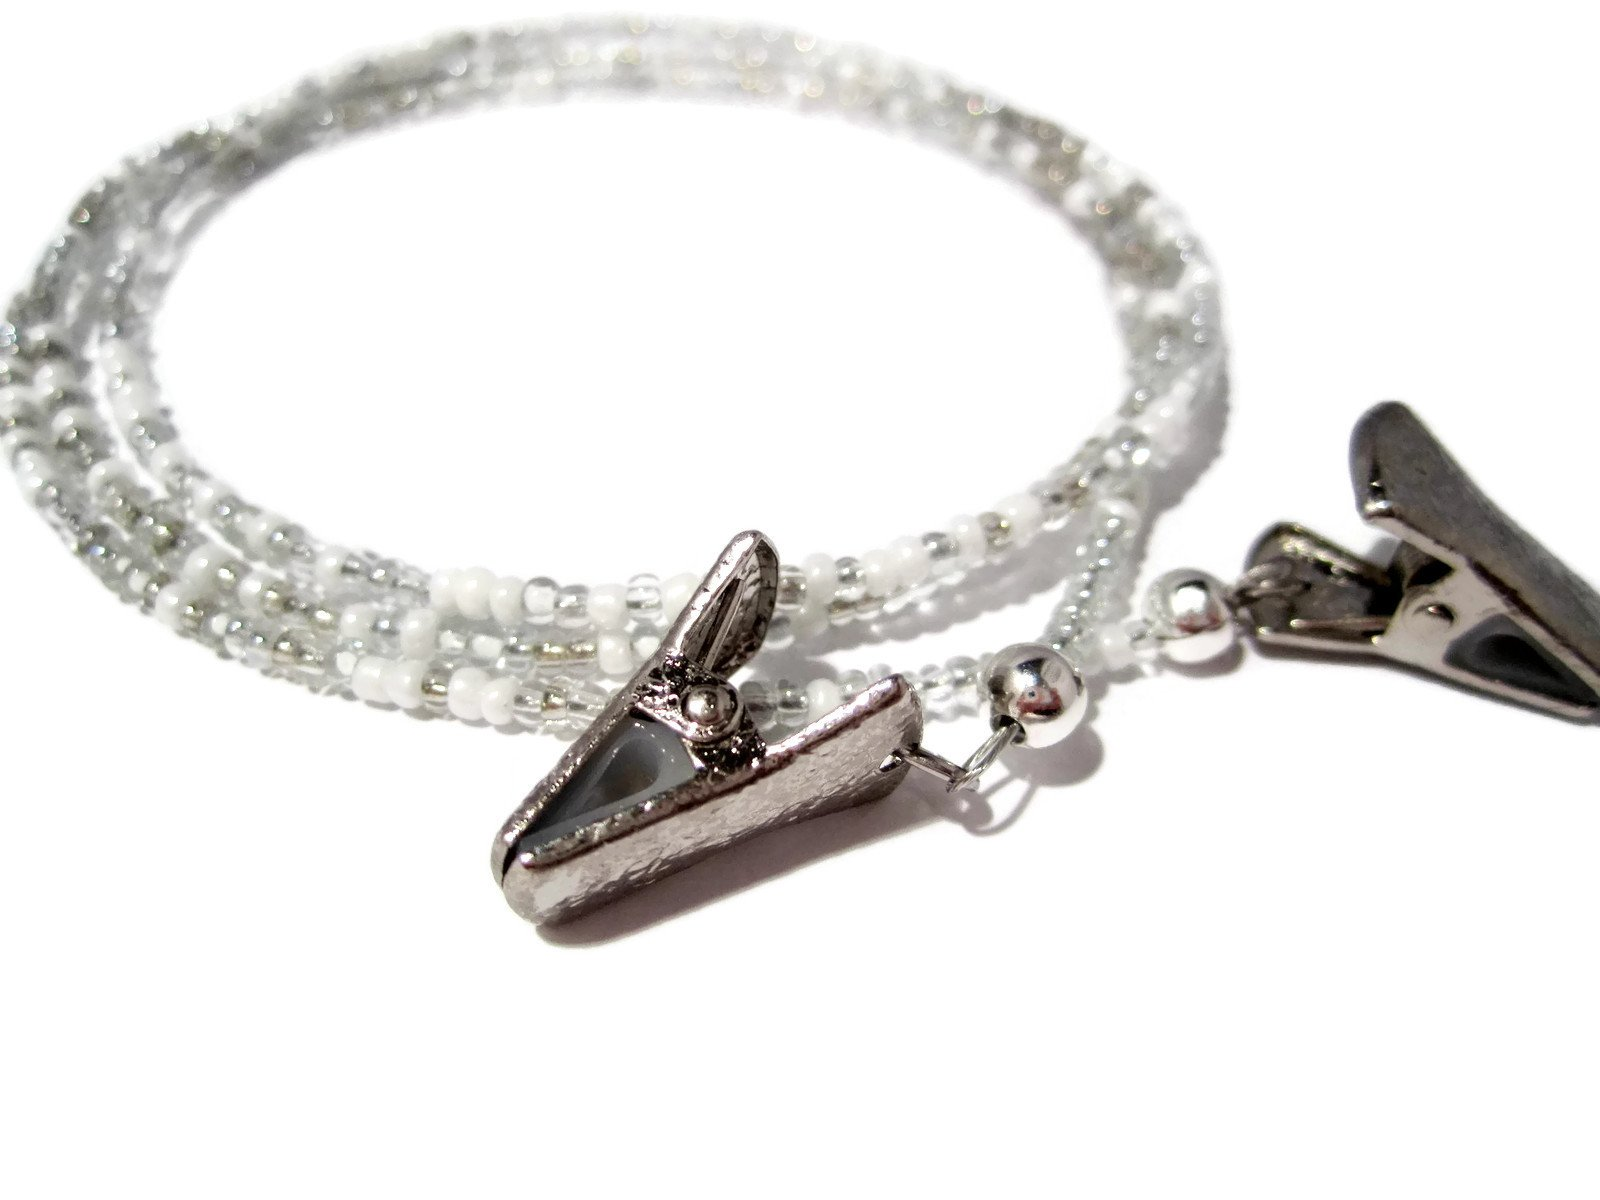 ATLanyards White and Silver Clip Eyeglass Holder - White and Silver Beaded Clip Eyeglass Chain